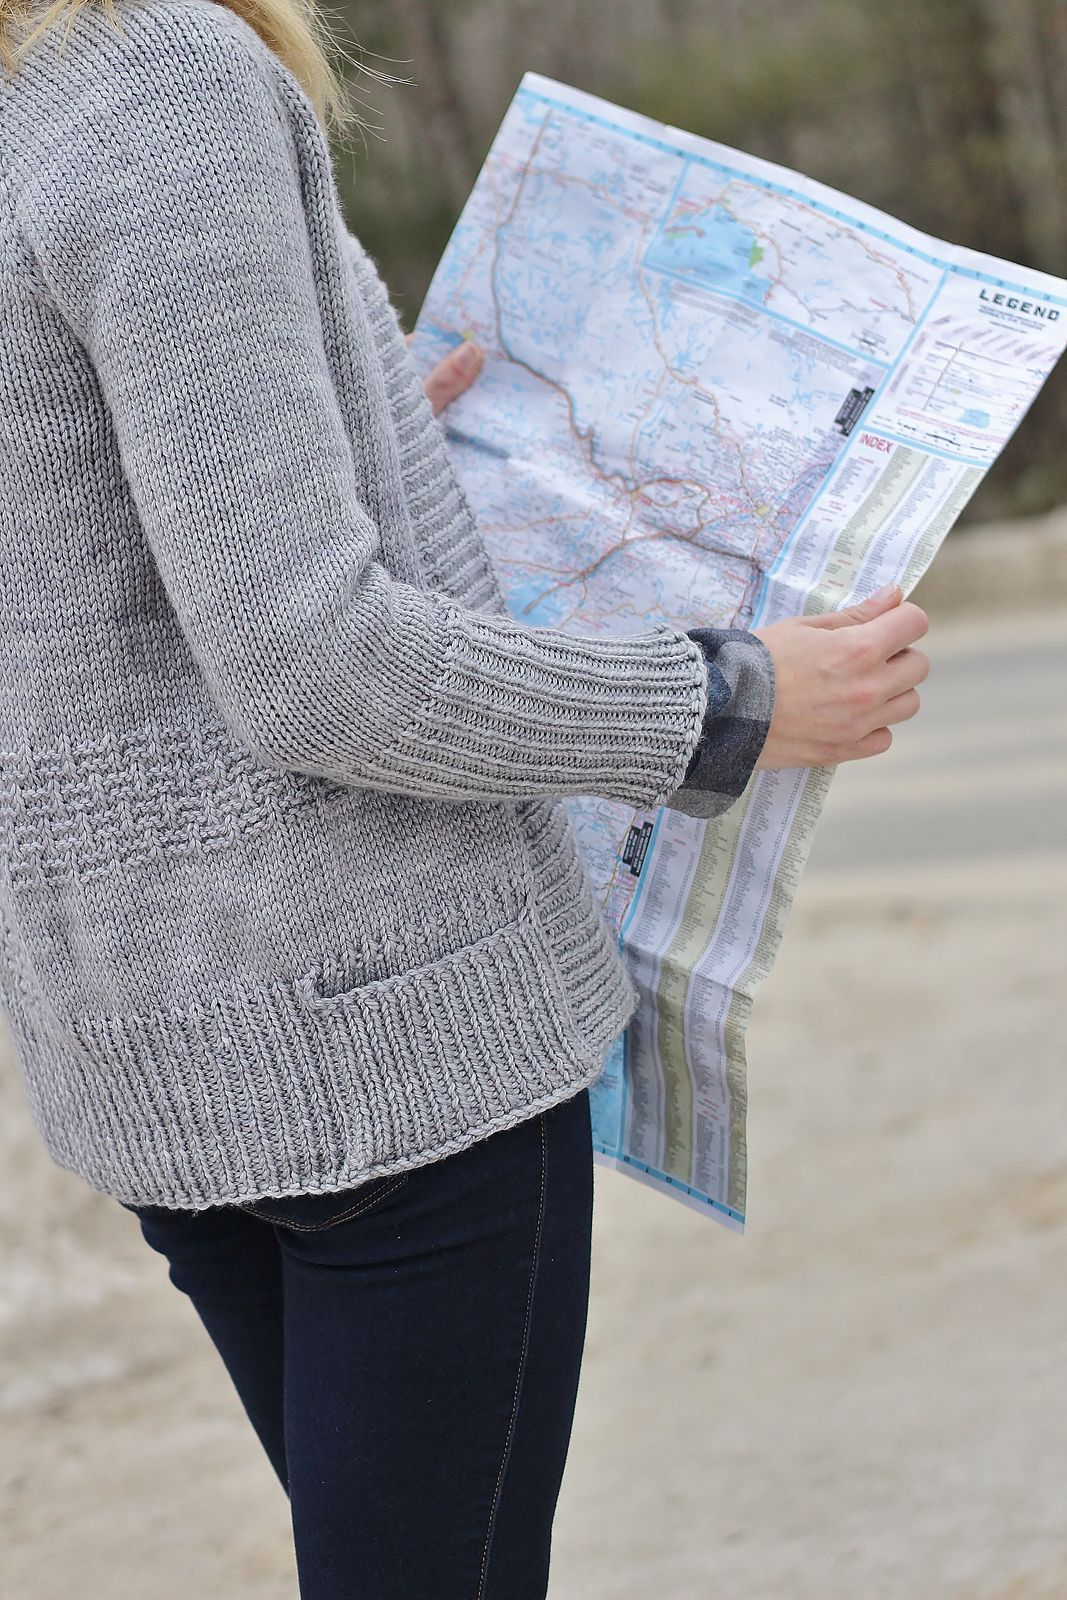 Ravelry: Crosscountry pattern by Alicia Plummer